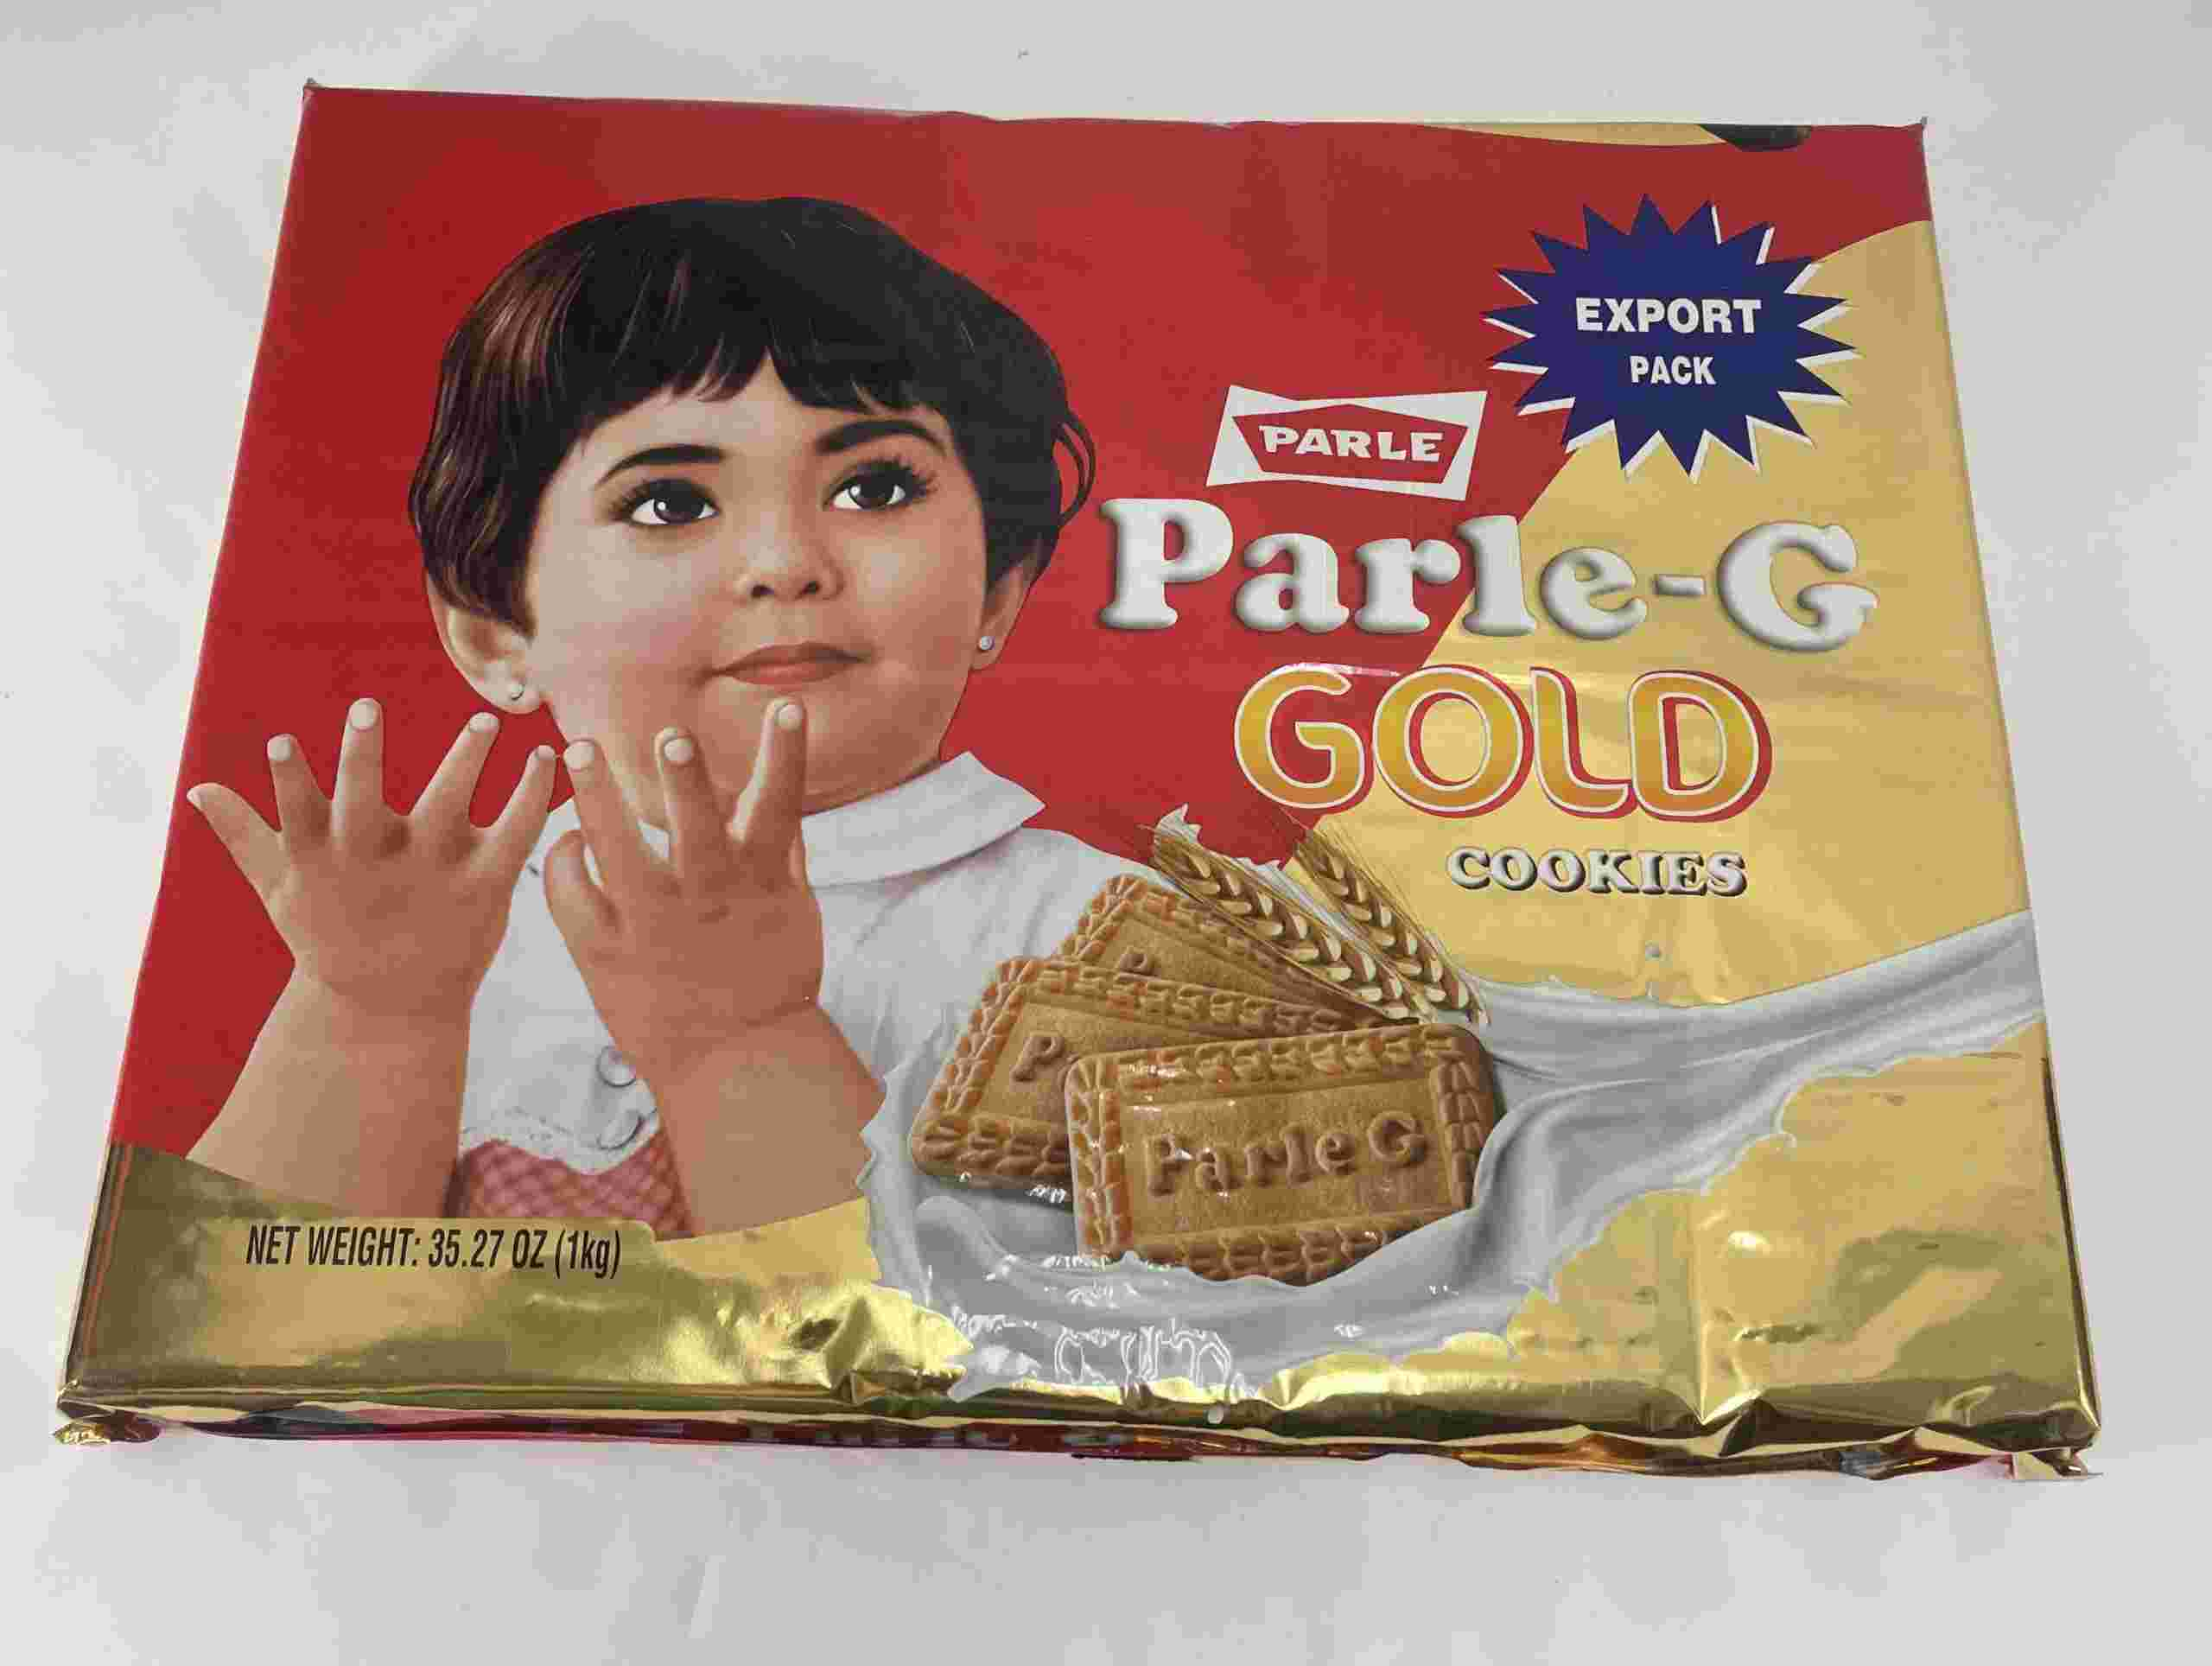 Parle Parle -G Gold